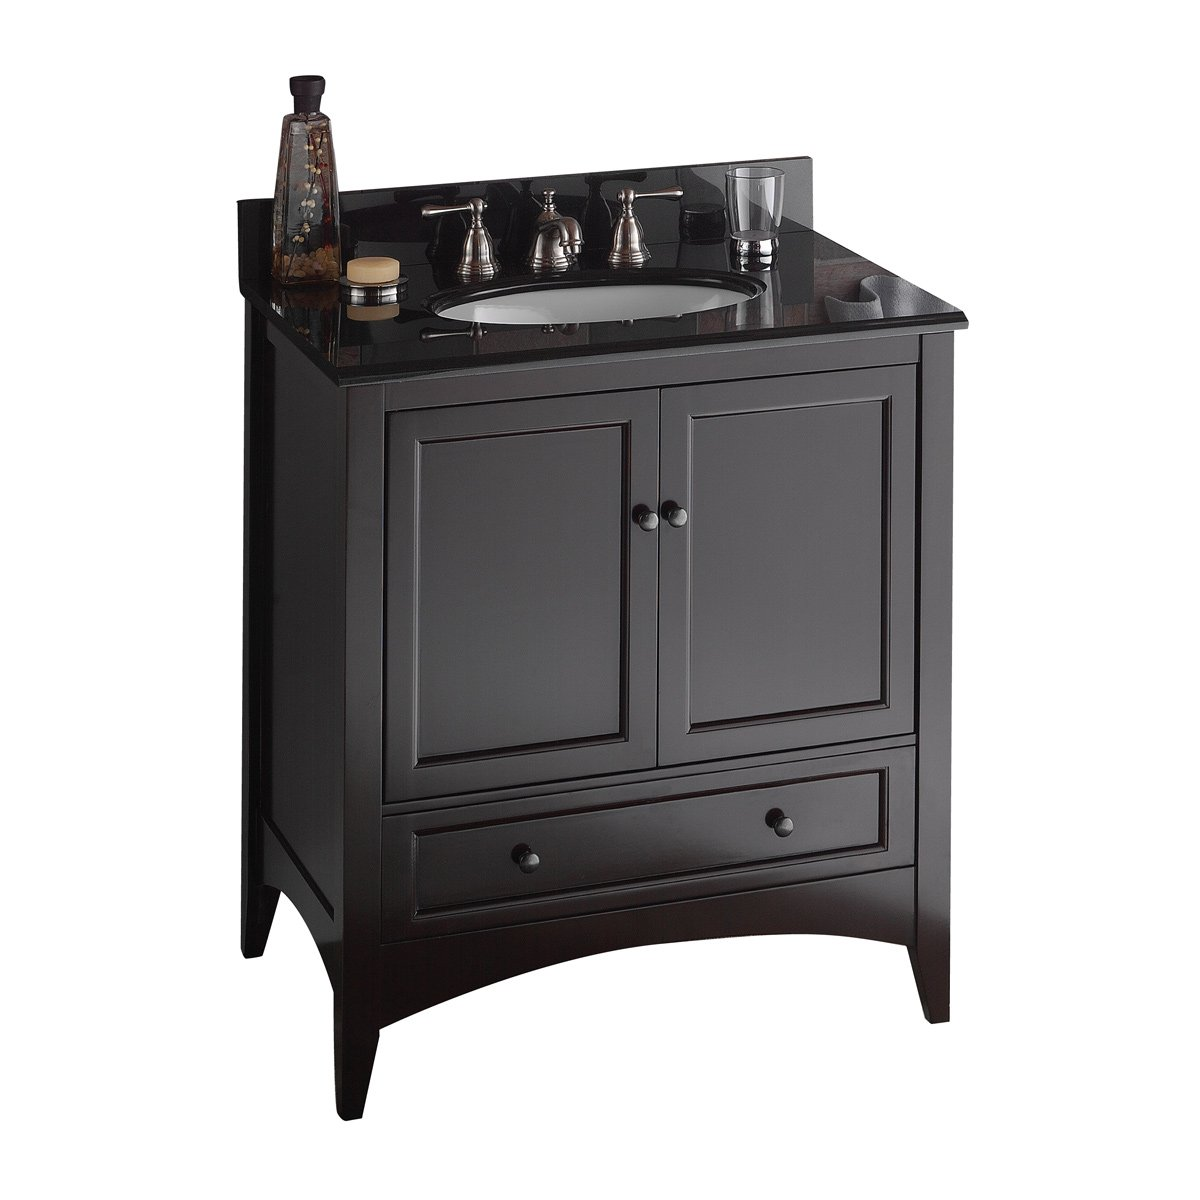 Foremost BECA3021D Espresso Bathroom Vanity